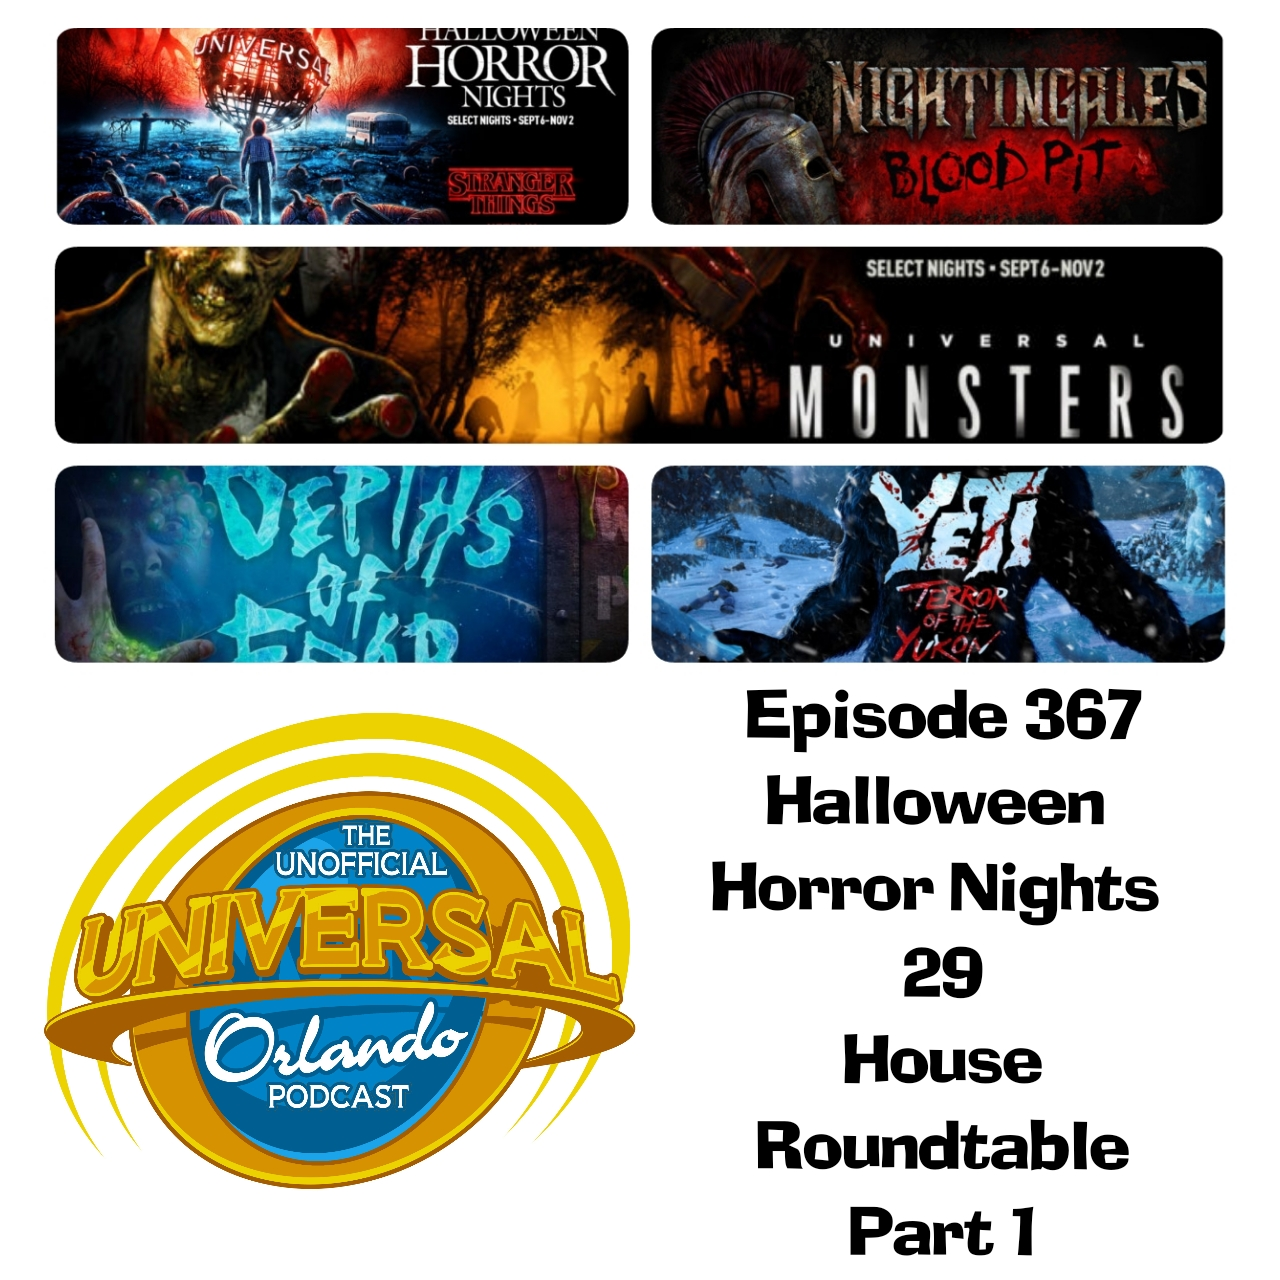 Halloween Horror Nights 2019 Poster.Unofficial Universal Orlando Podcast 2019